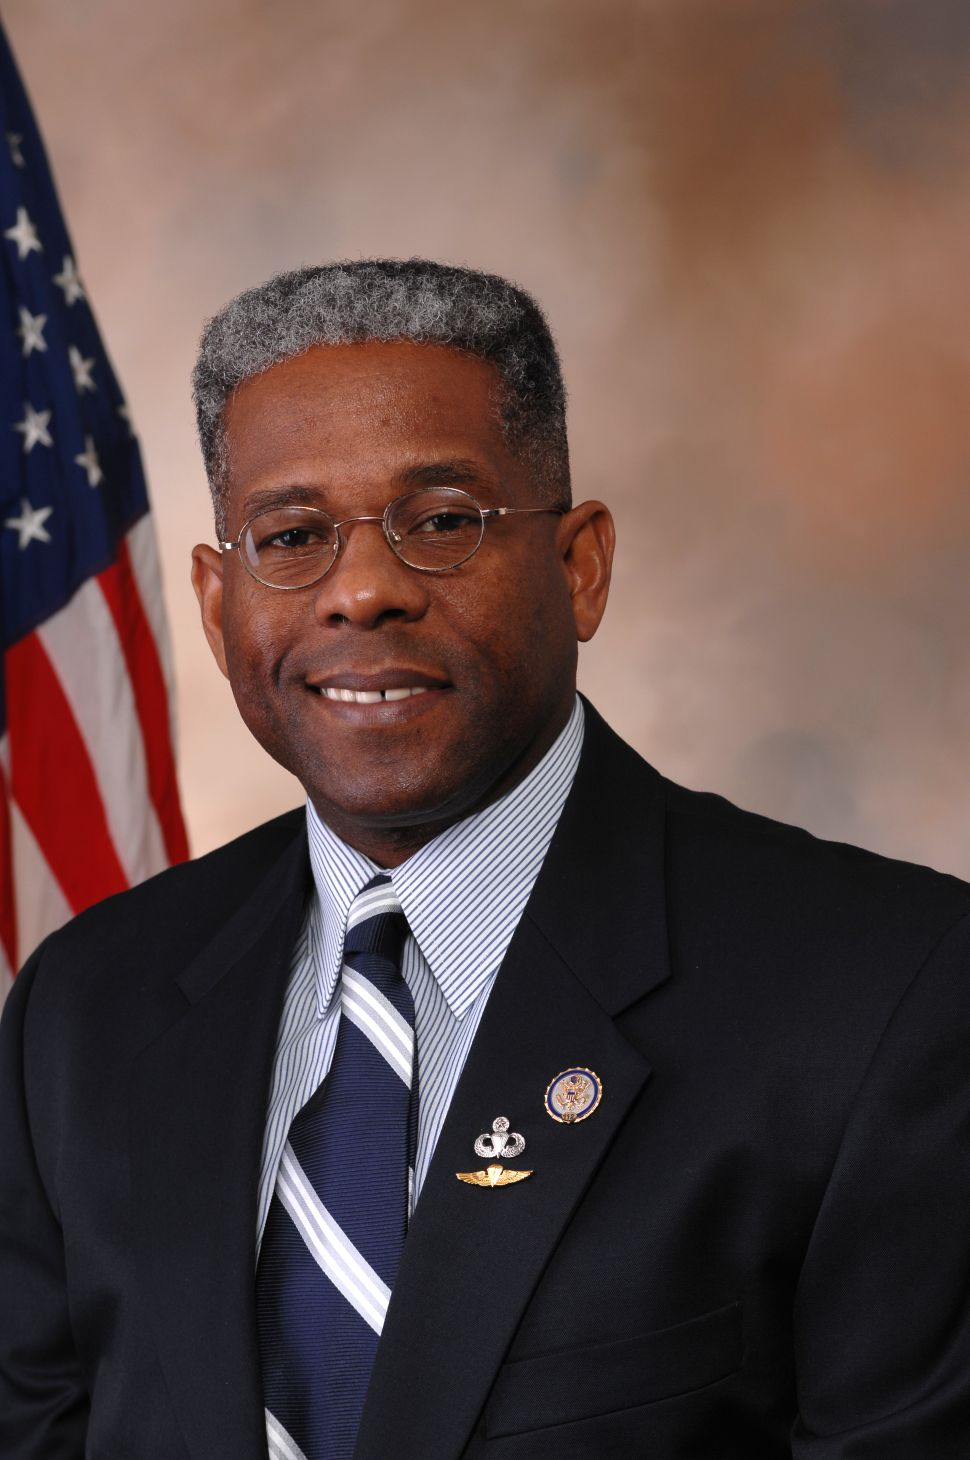 Allen West's Campaign Outlines Their 'Serious Concerns' With His Election Result